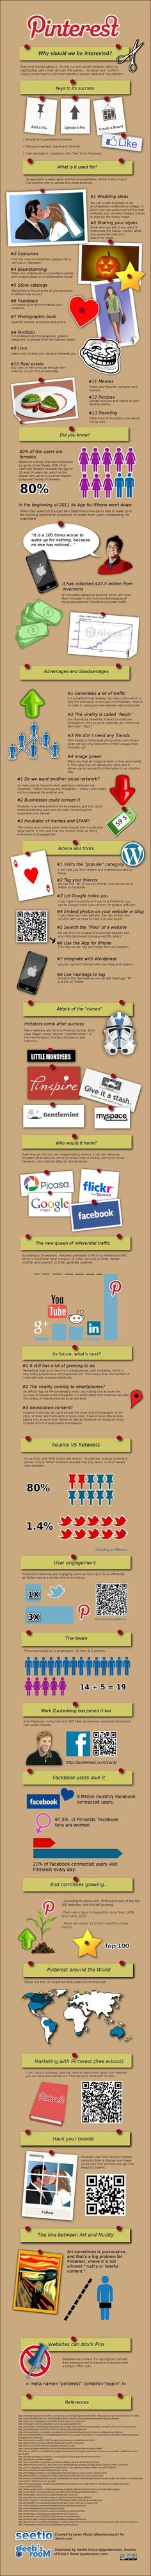 Pinterest: Why Should We Be Interested?  #Pinterest Infographic